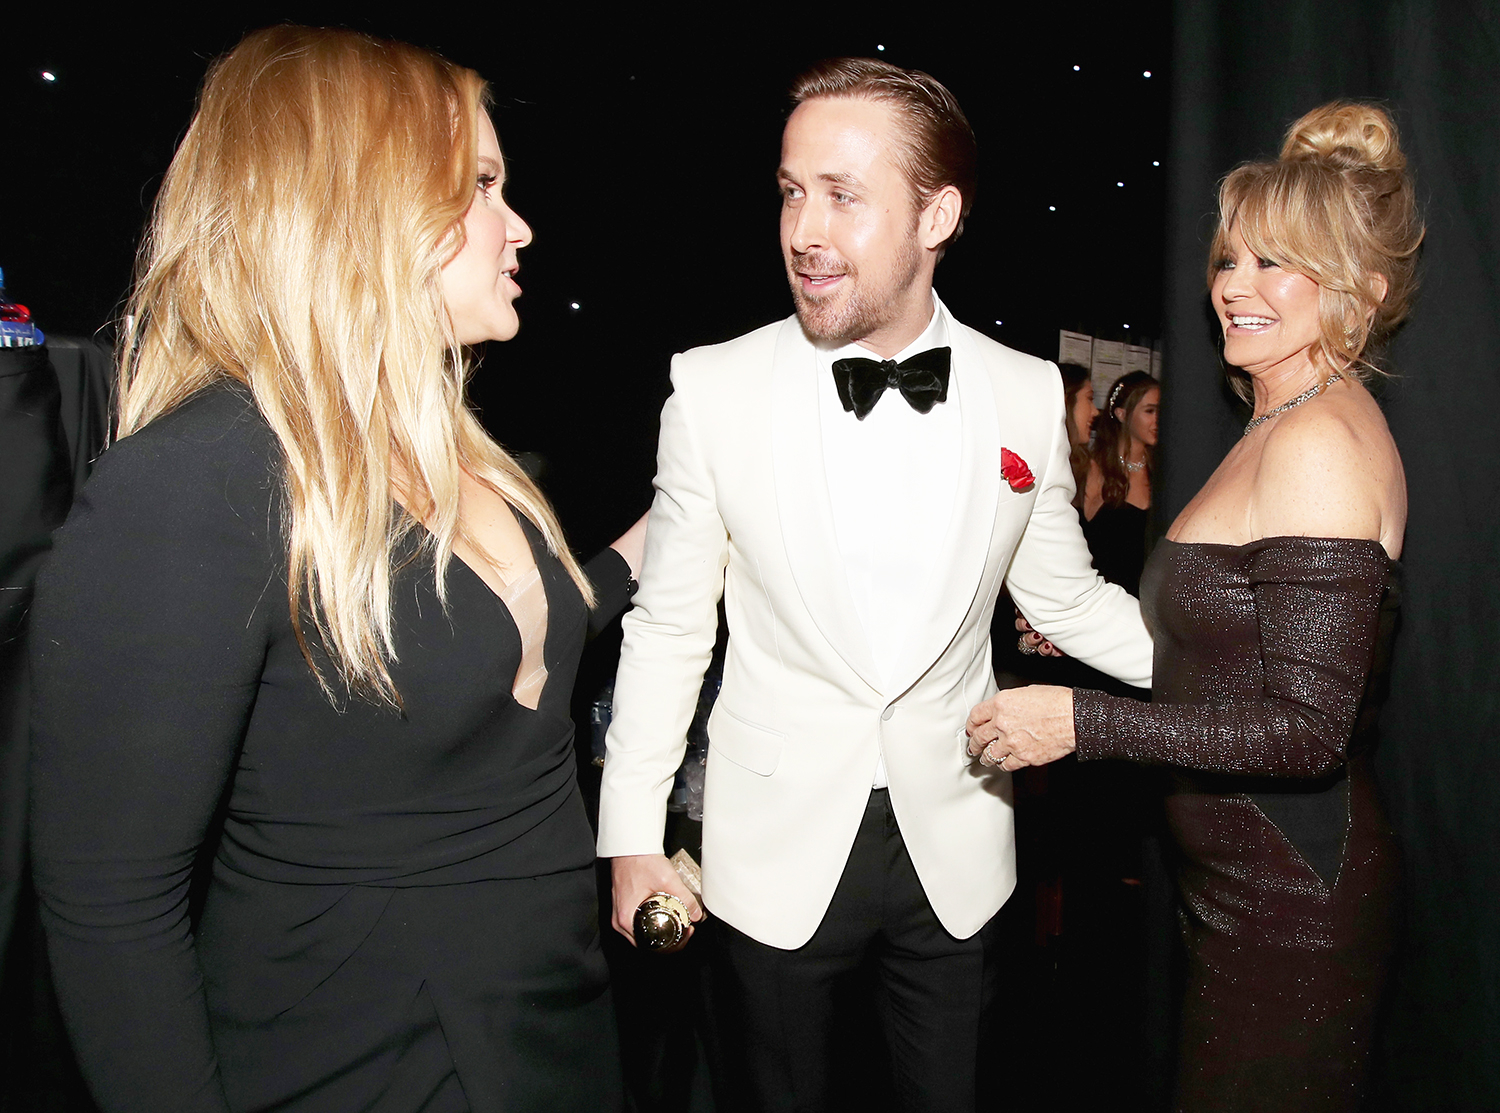 Amy Schumer, Ryan Gosling and Goldie Hawn at the 74th Annual Golden Globe Awards held at the Beverly Hilton Hotel on Jan. 8, 2017.